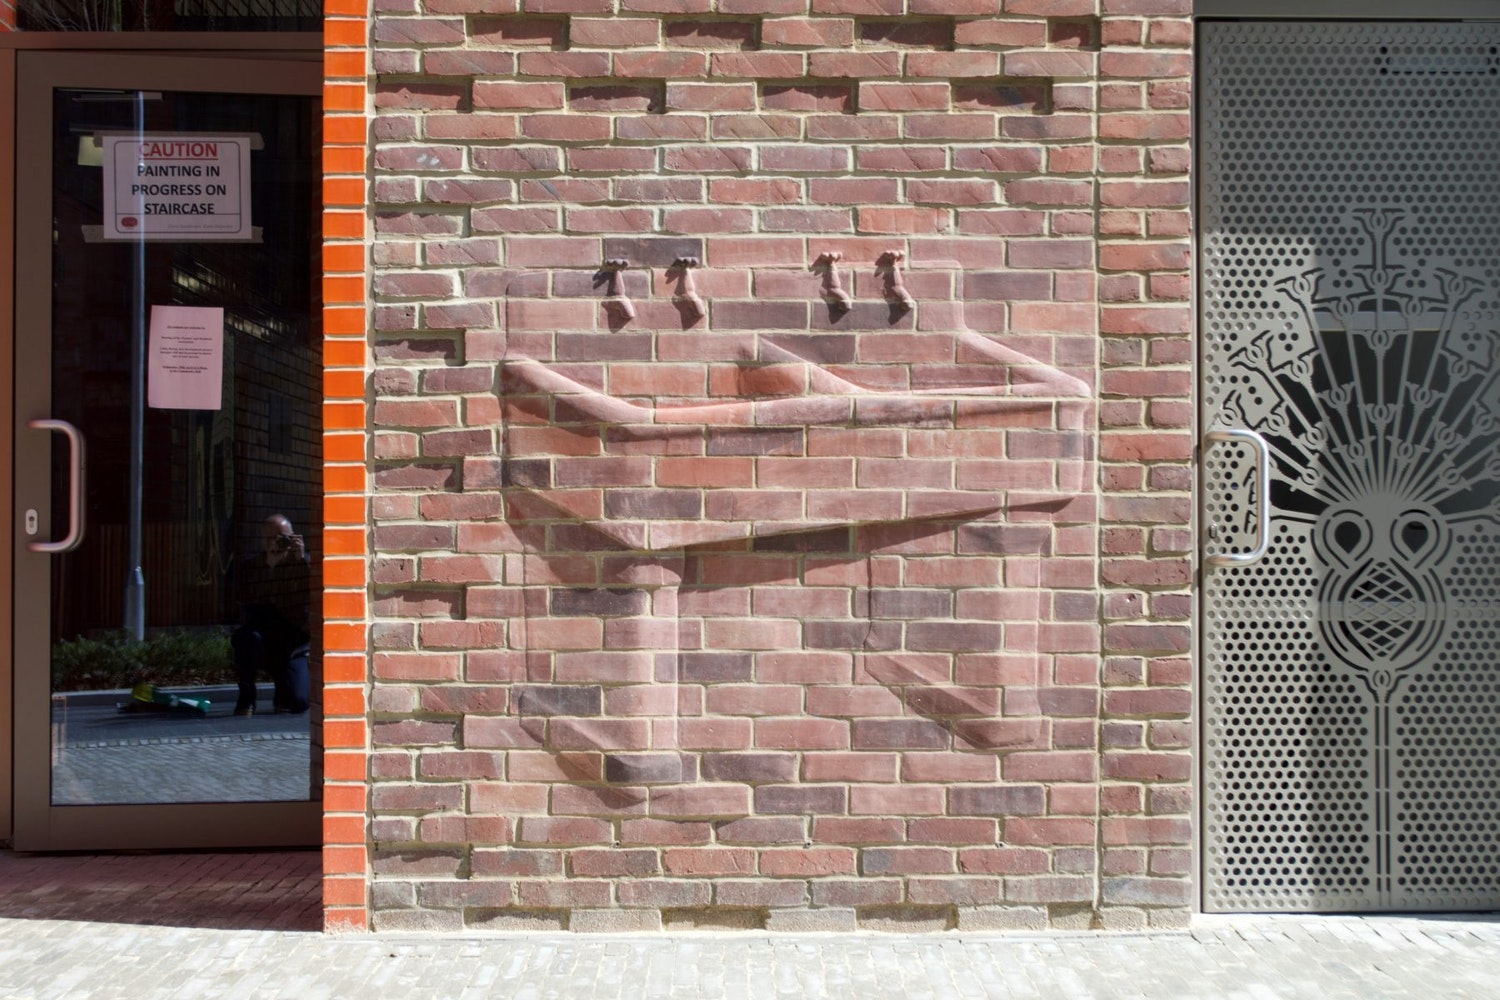 Rodney Harris Sink 2017 Brick Peabody St Johns Hill London scaled 1800x1200 c center